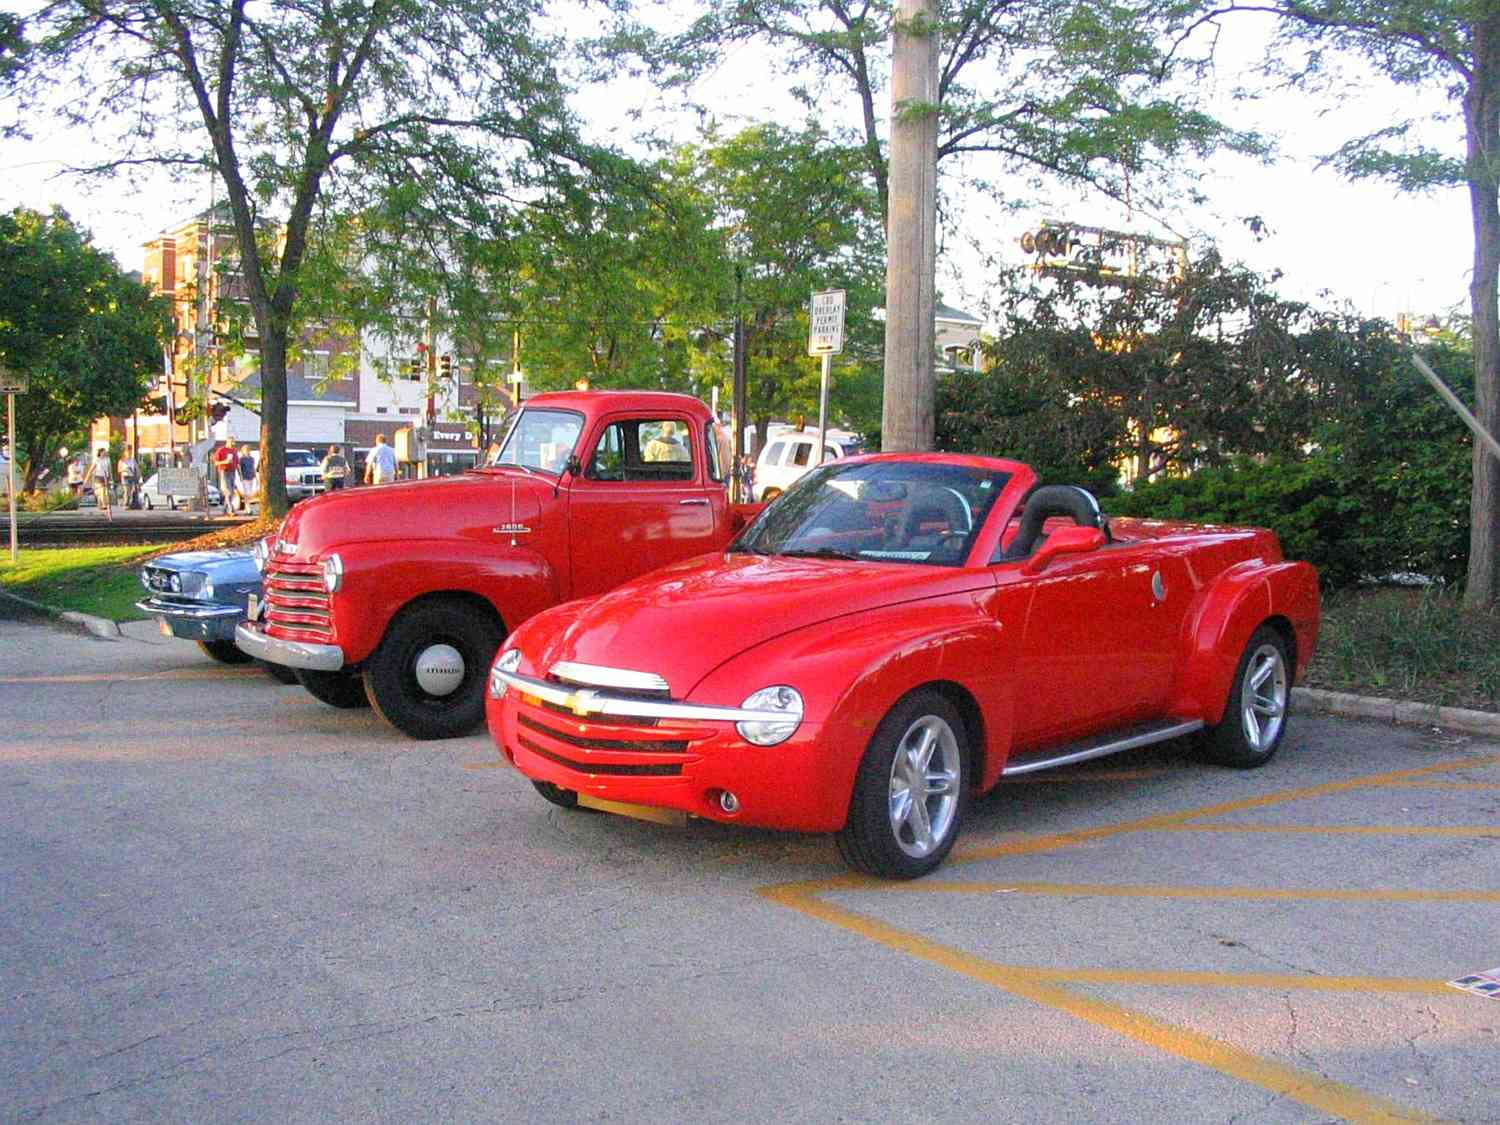 MY SSR, 53 Chevy truck, and a car show( Pics) - Chevy SSR Forum